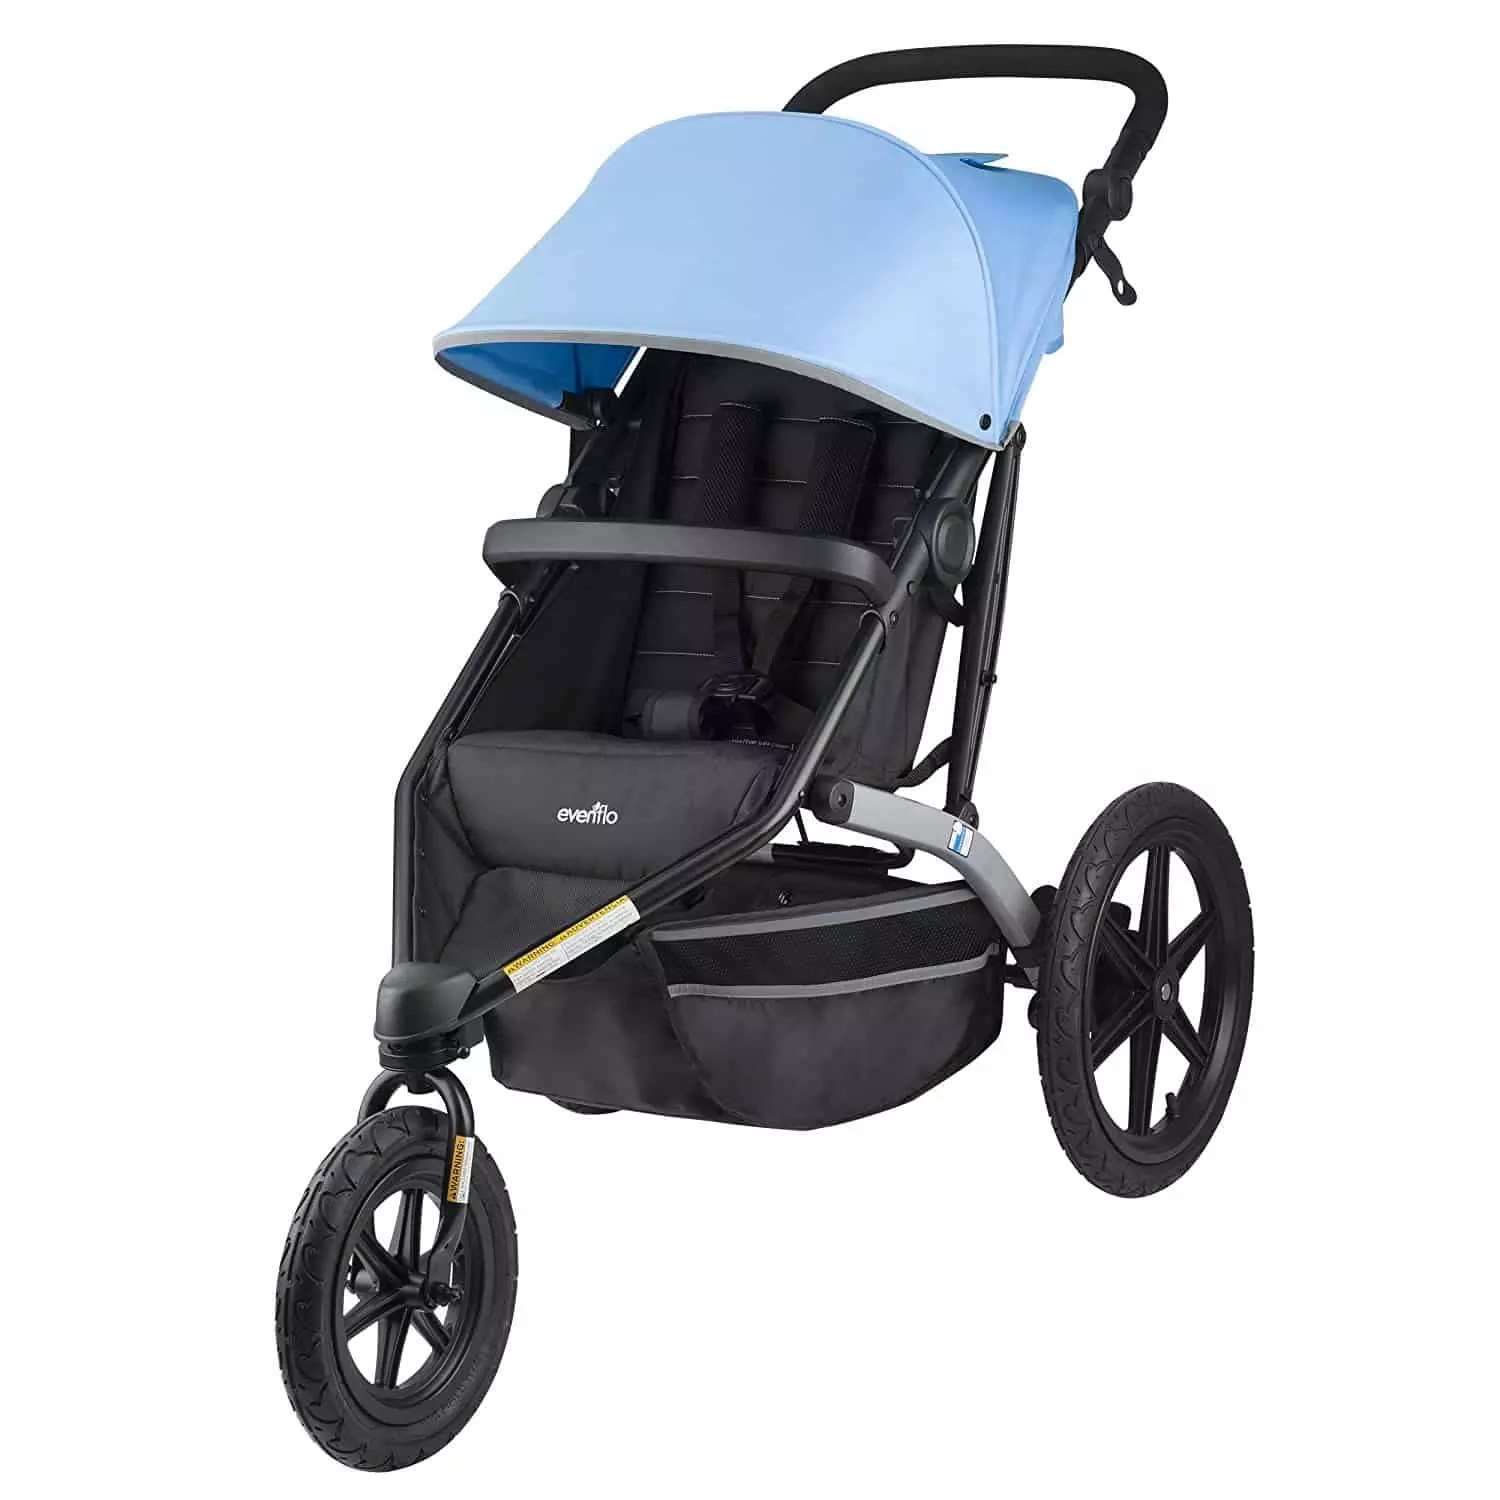 Jogging Stroller How To Use Stroller Brand Review Evenflo Baby Bargains